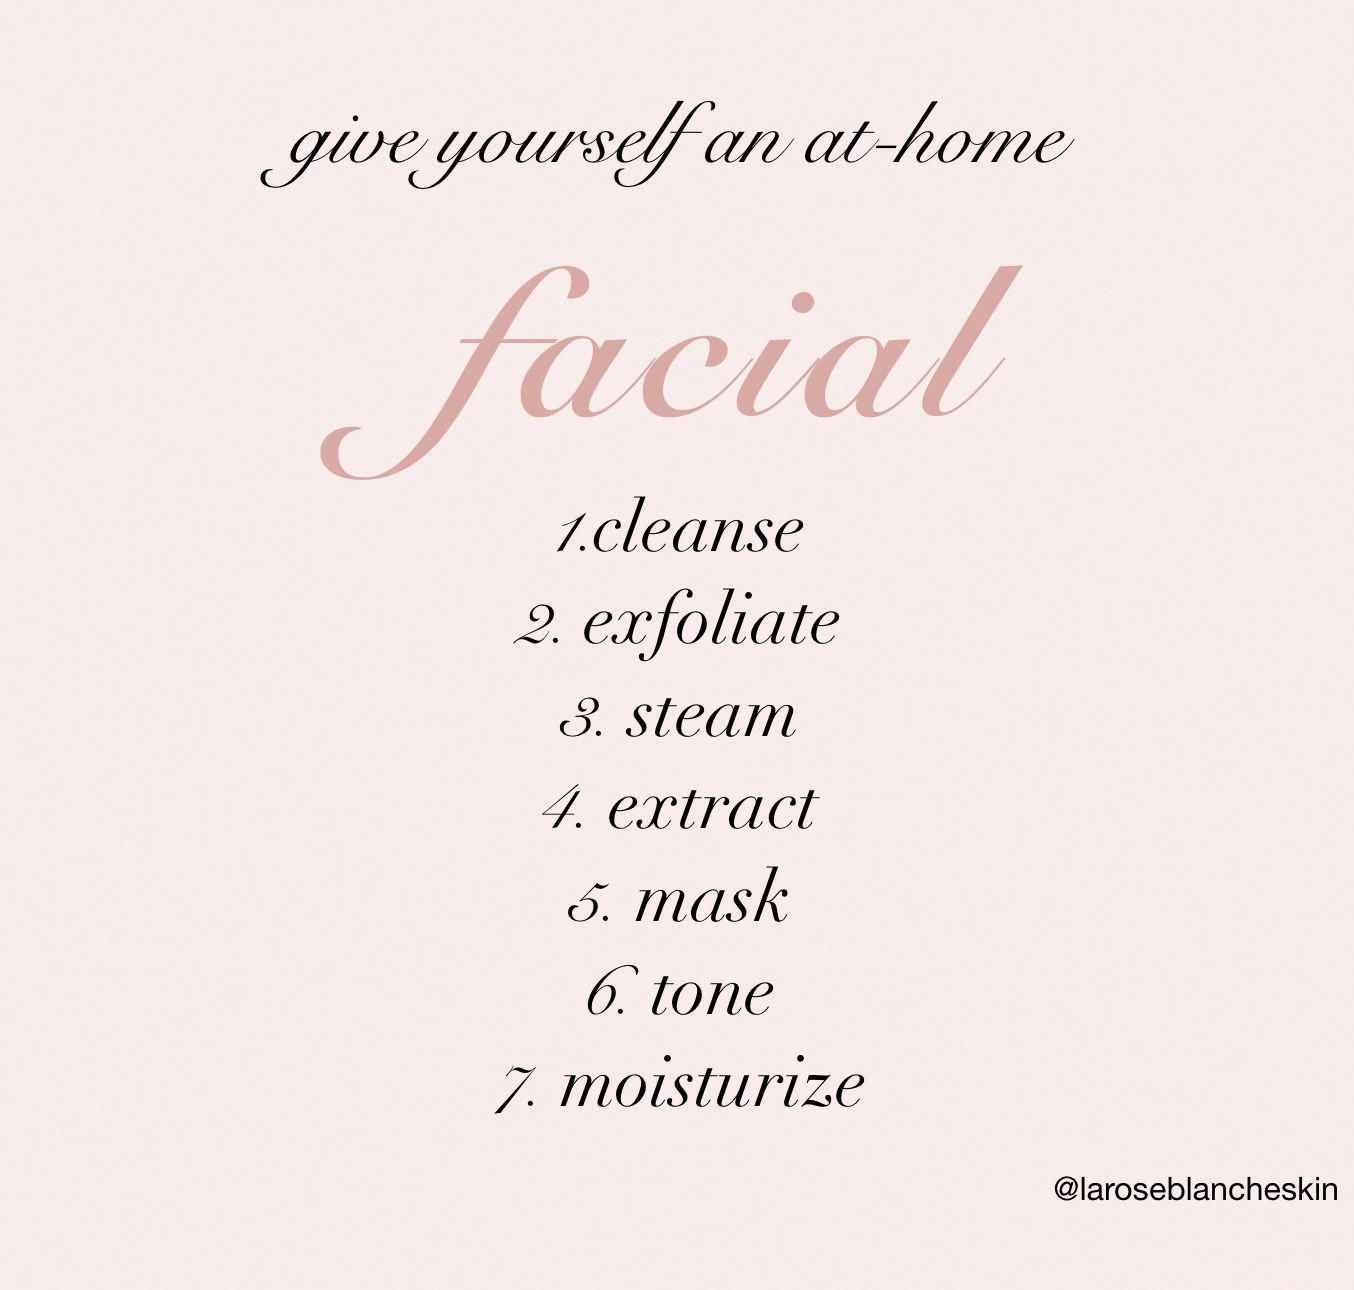 1. Cleanse 2. Exfoliate 3. Steam 4. Extract 5. Mask 6